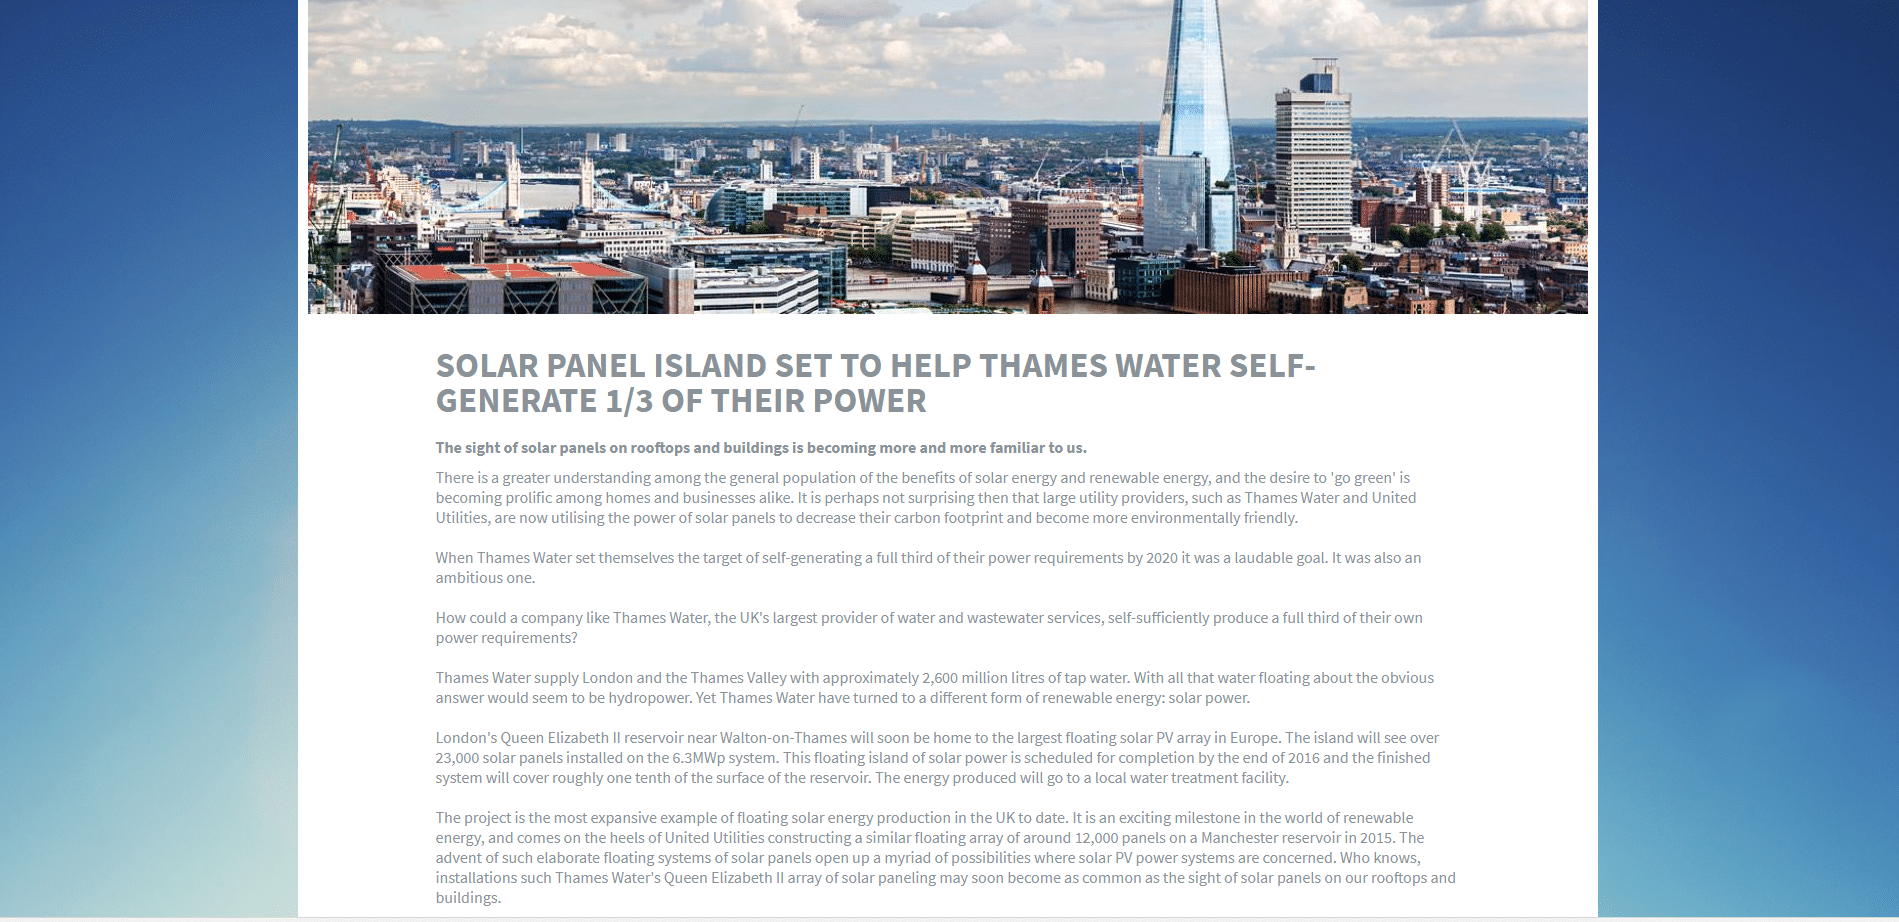 Recycle Solar - Solar Panel Island Set To Help Thames Water Self-Generate A Third Of Their Power